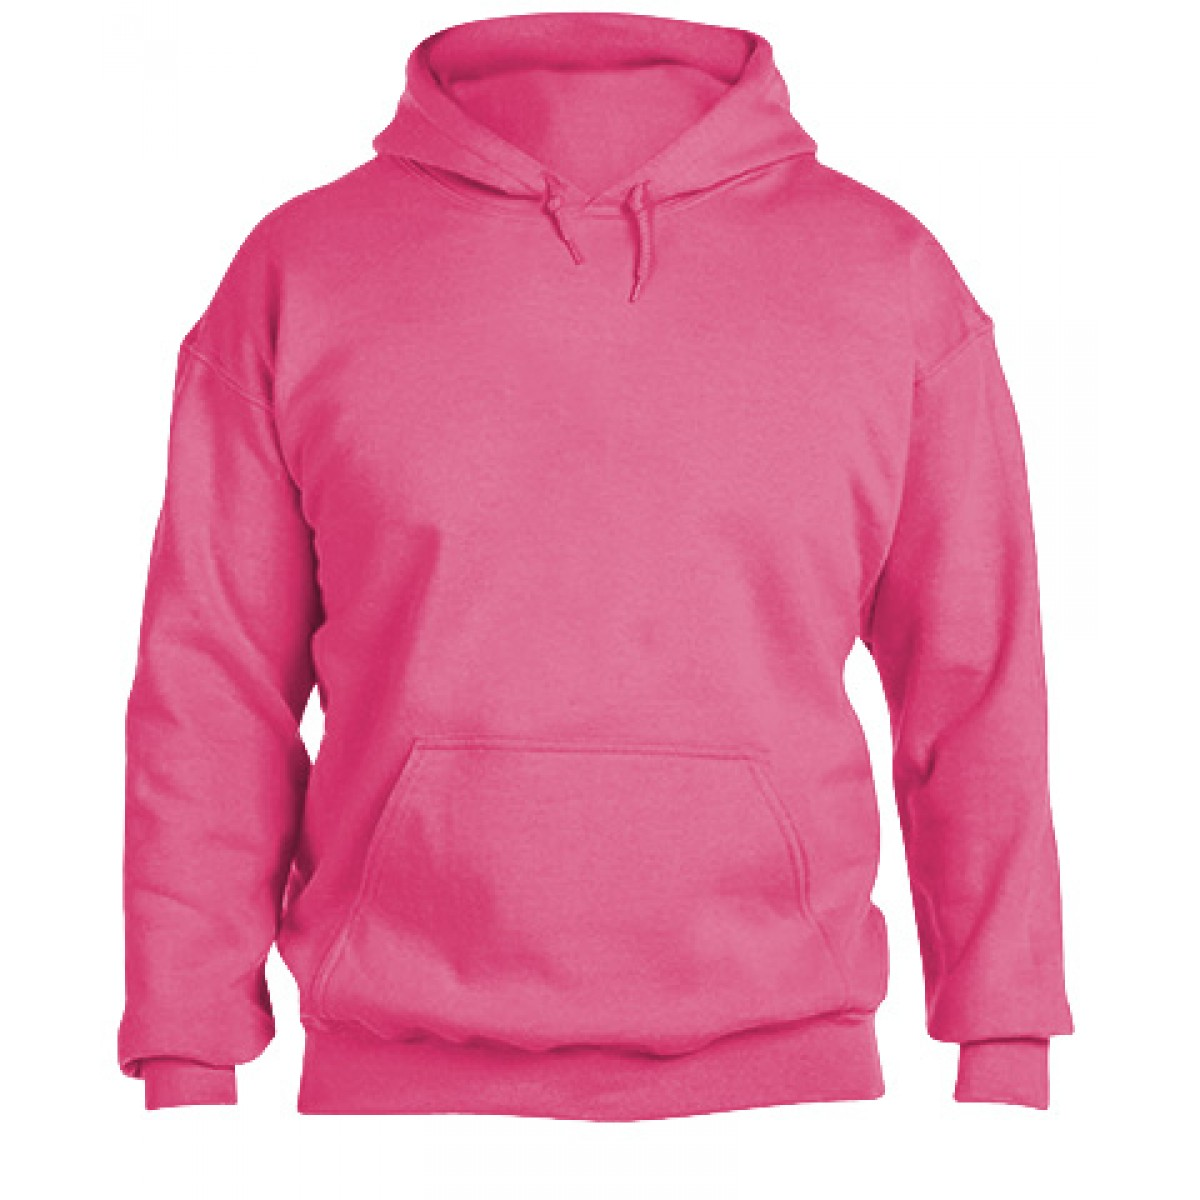 Hooded Sweatshirt 50/50 Heavy Blend -Safety Pink-XL